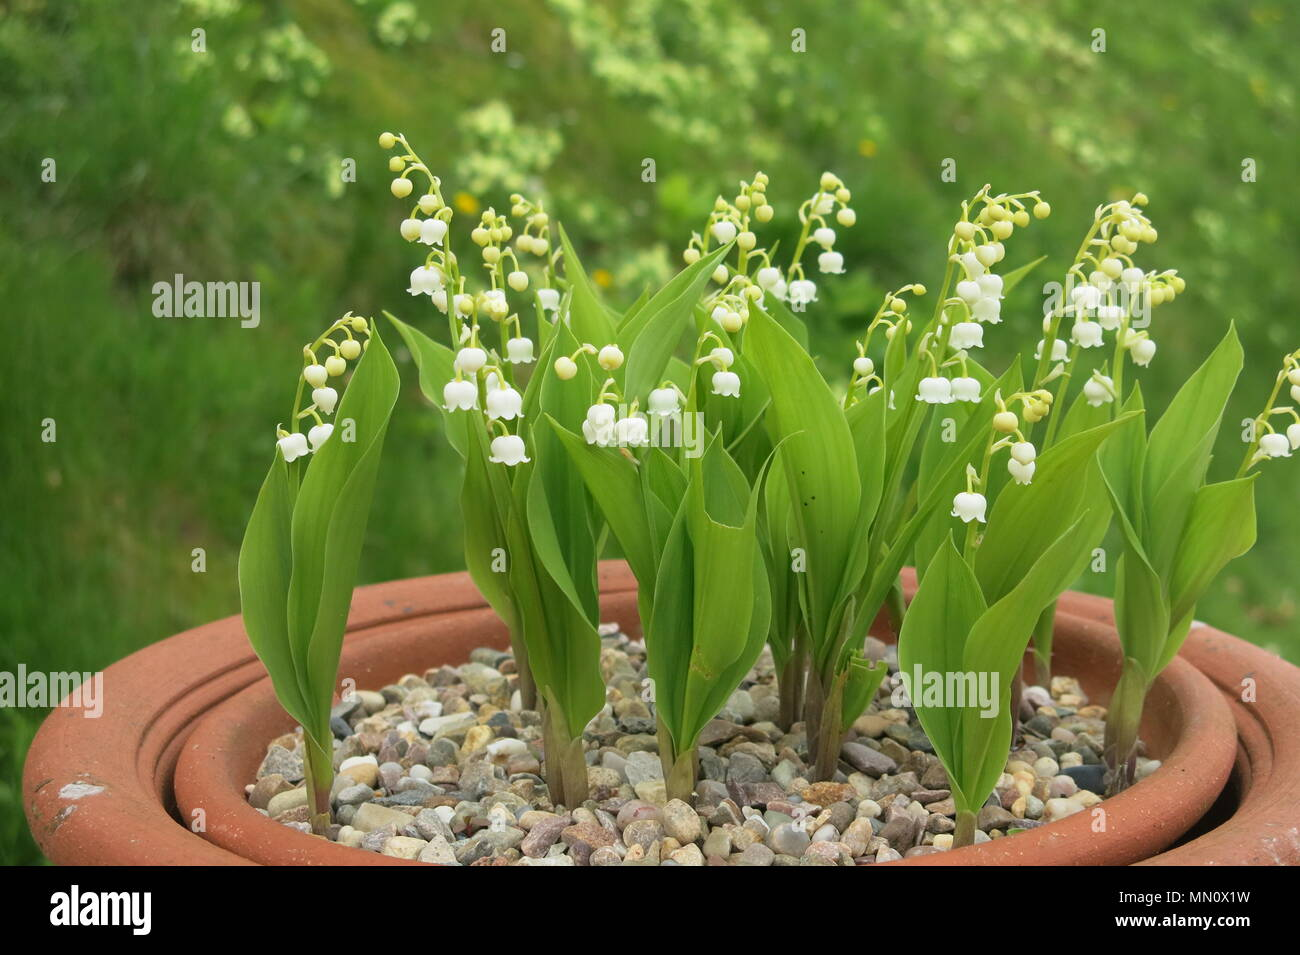 This Pot Of Lily Of The Valley Also Known As May Bells And Our